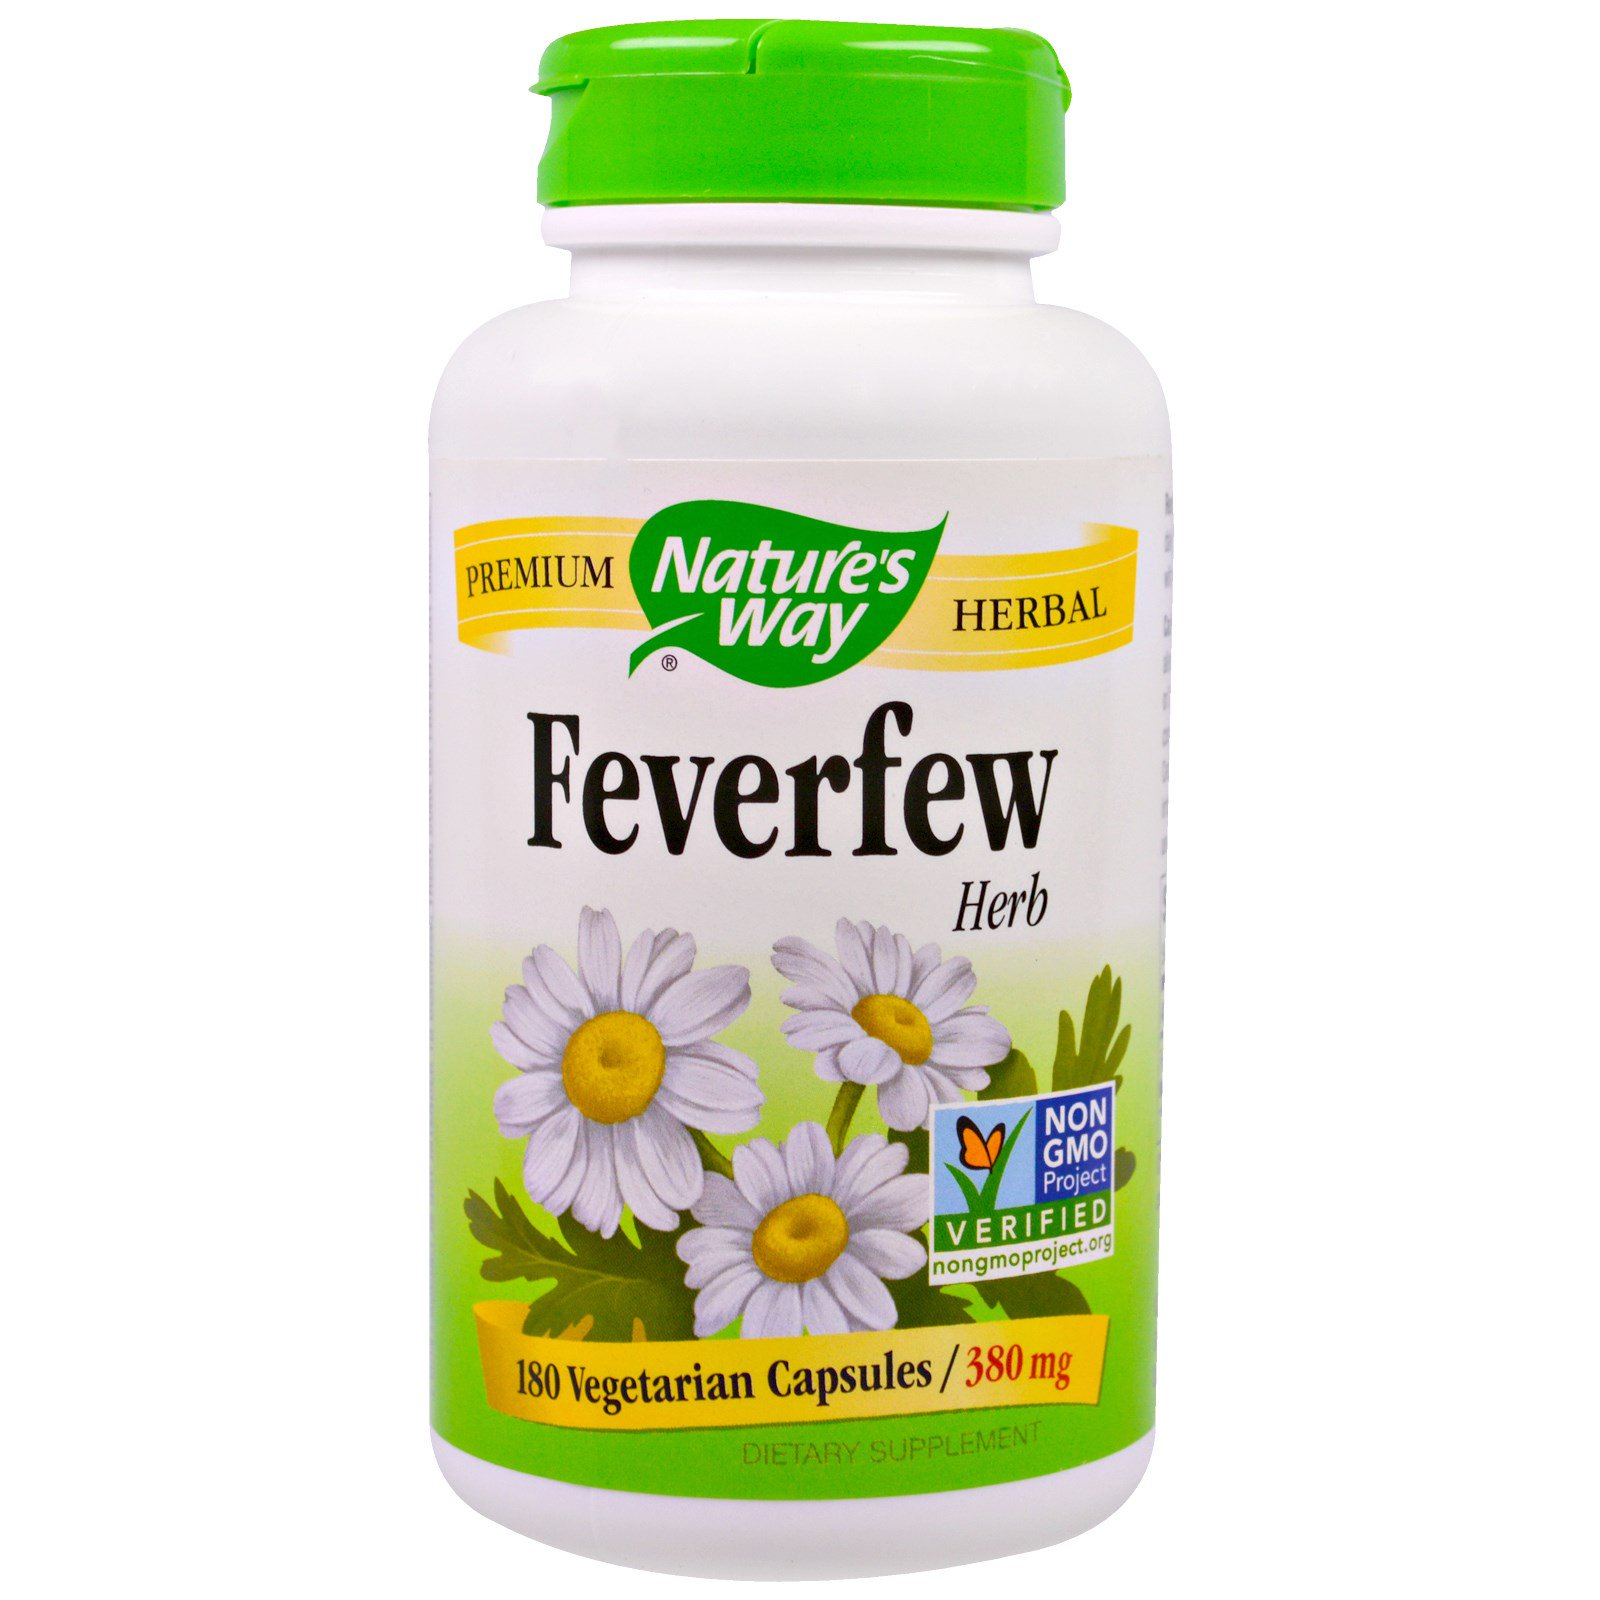 Feverfew for migraines reviews